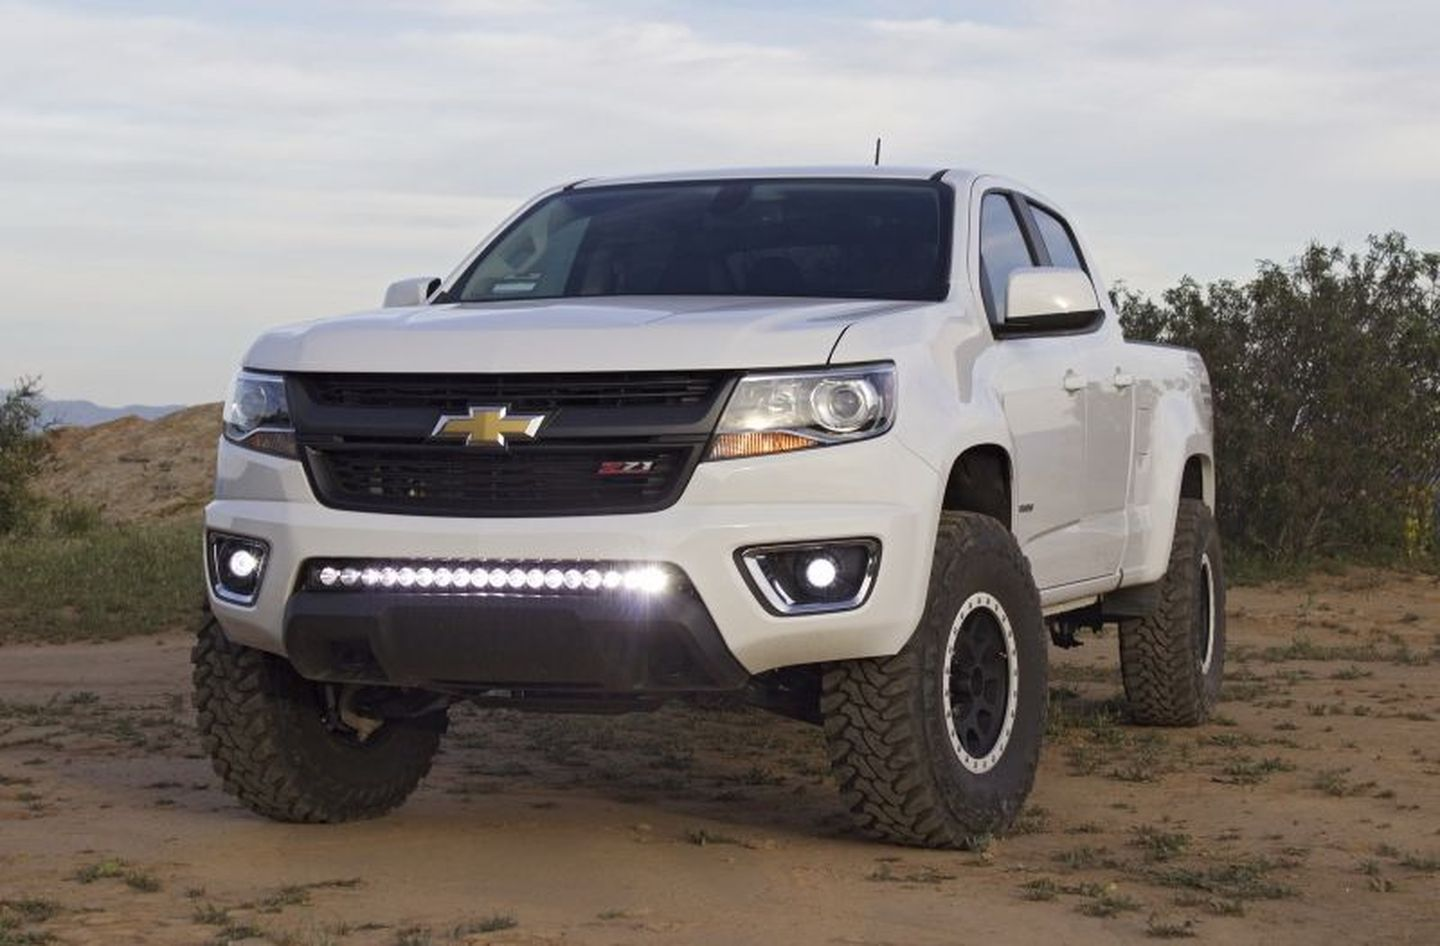 Colorado chevy colorado 33s : 2015 Chevy Colorado w/ Zone 5.5'' Lift Kit and 33s   Stuff to Buy ...